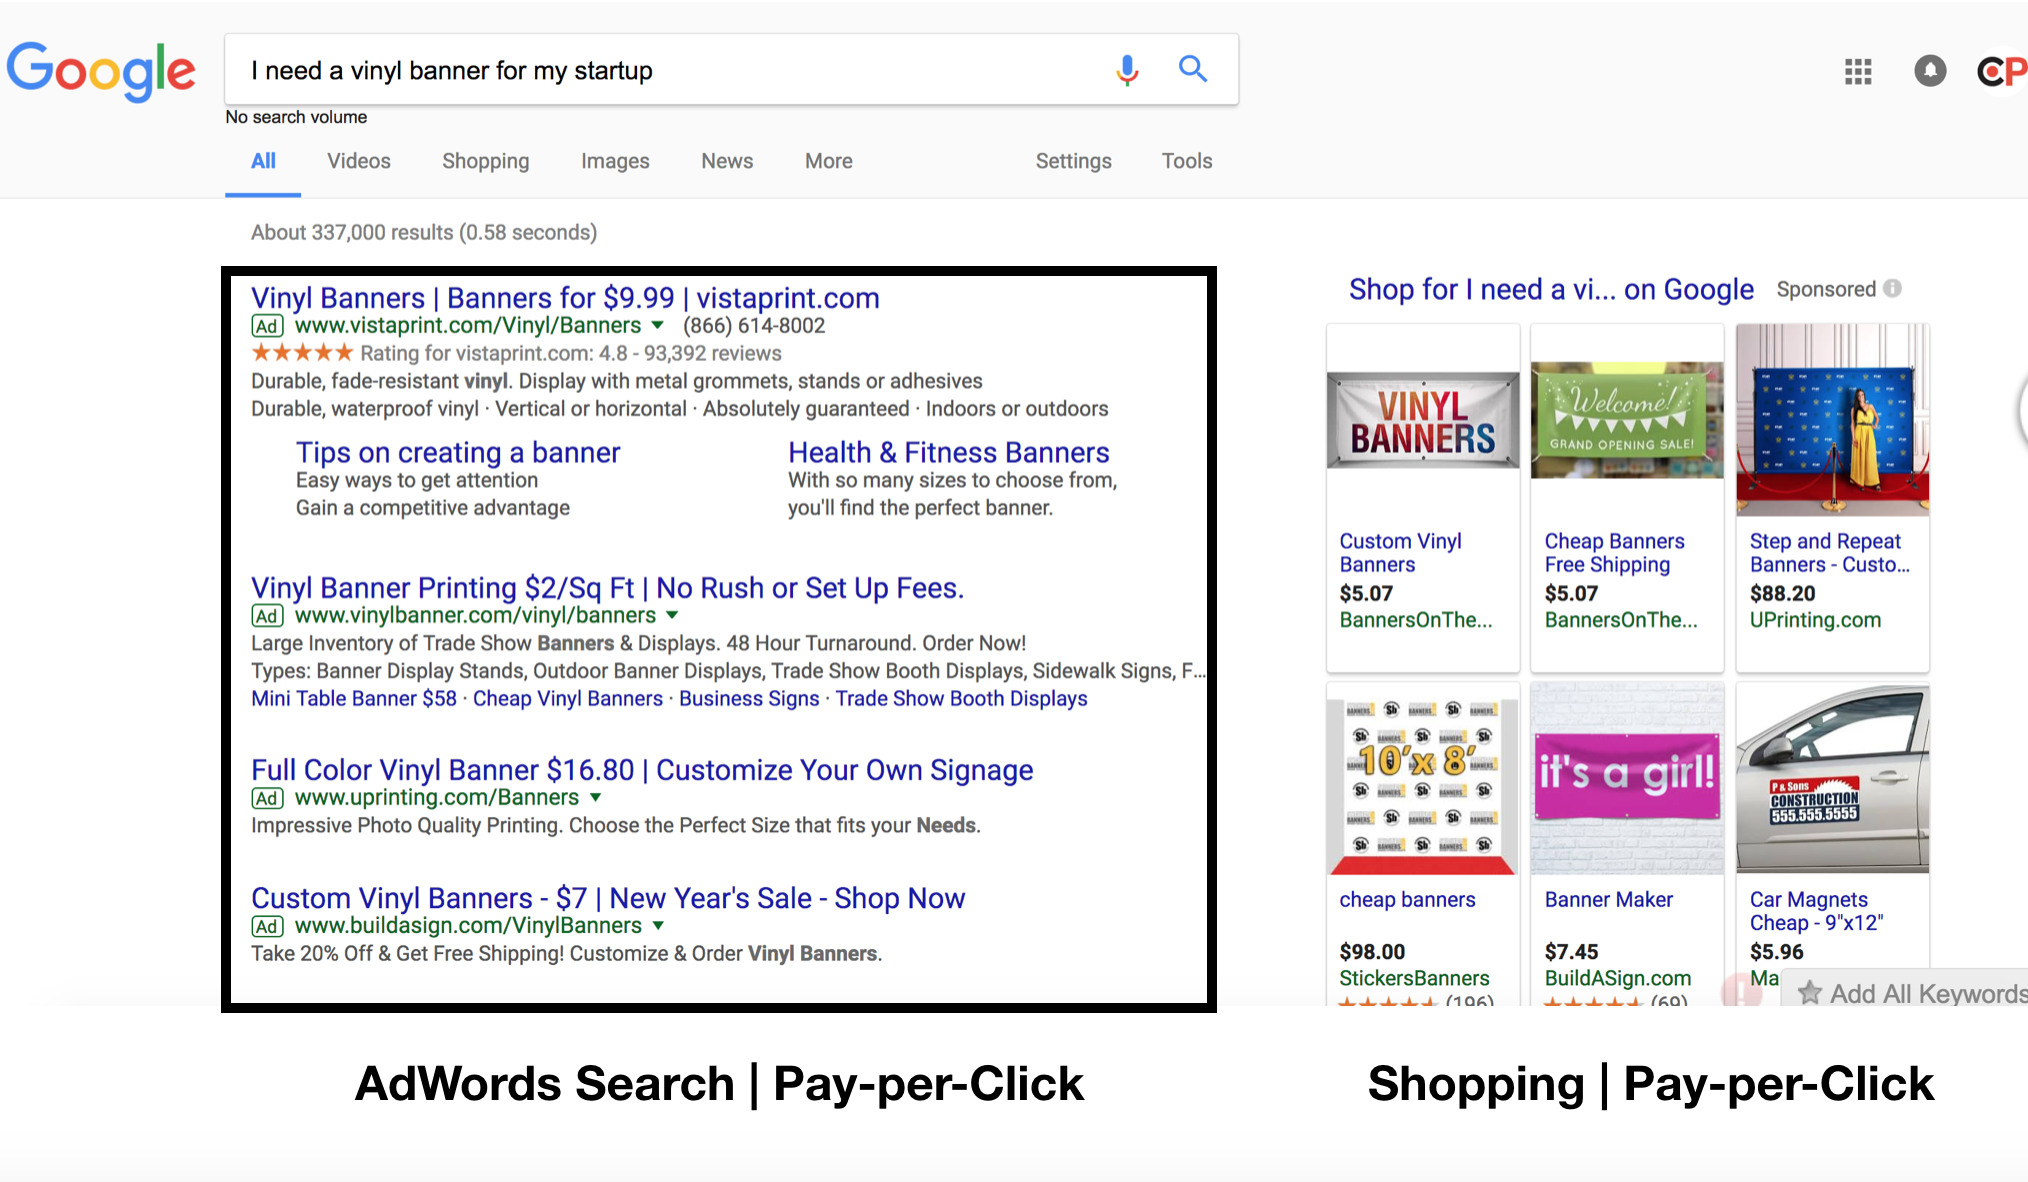 Startups using ppc marketing.